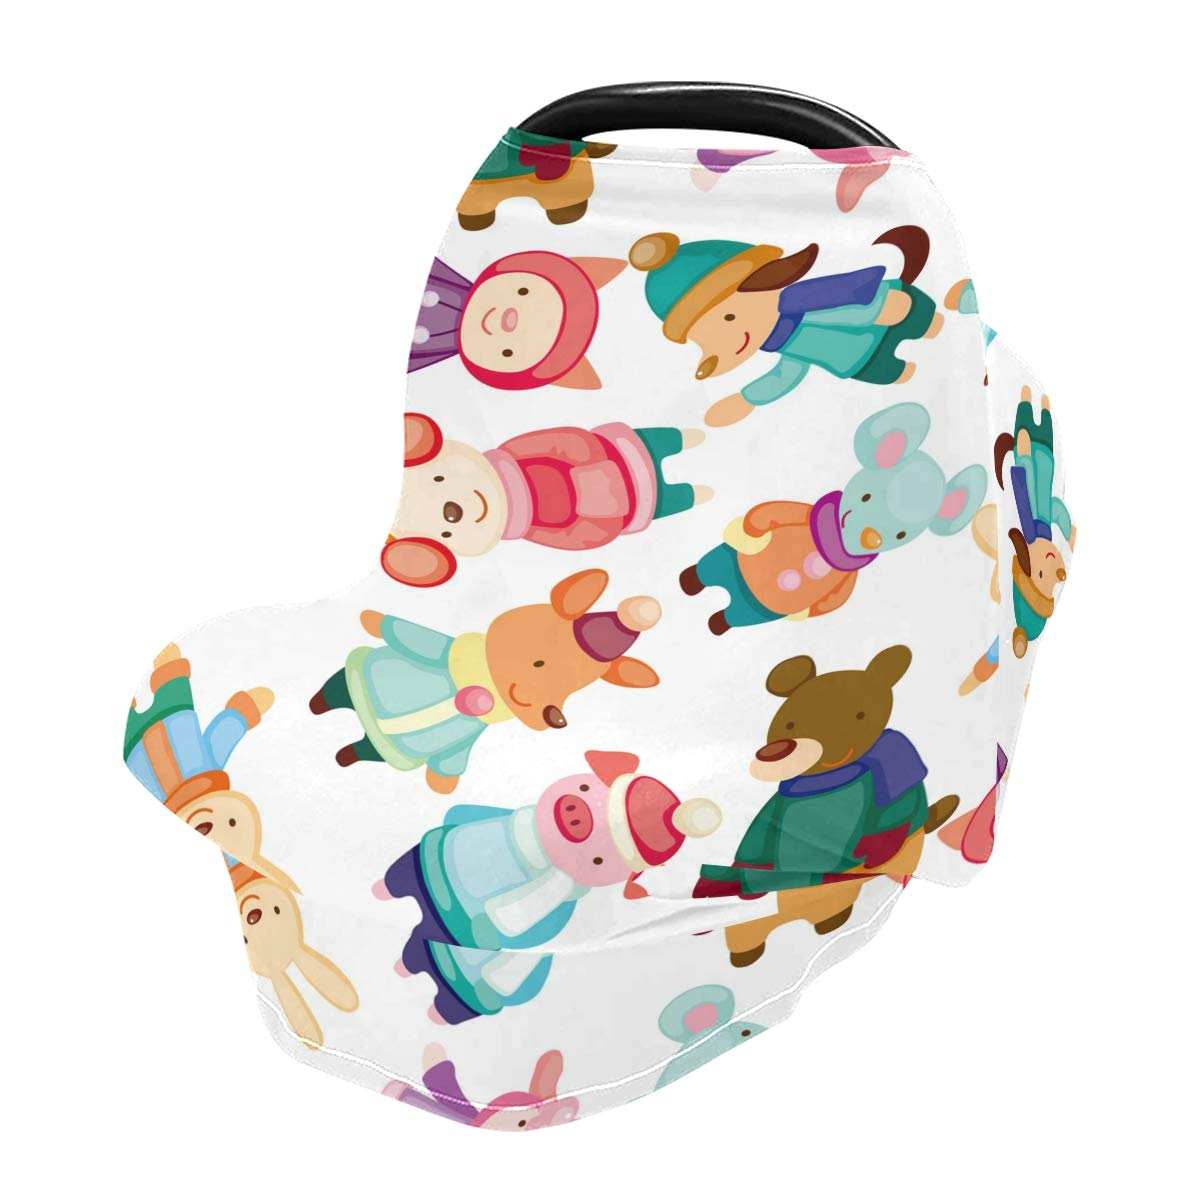 Nursing Cover Breastfeeding Scarf Cartoon Winter Animals - Baby Car Seat Covers, Infant Stroller Cover, Carseat Canopy for Girls Band Boys(902i)